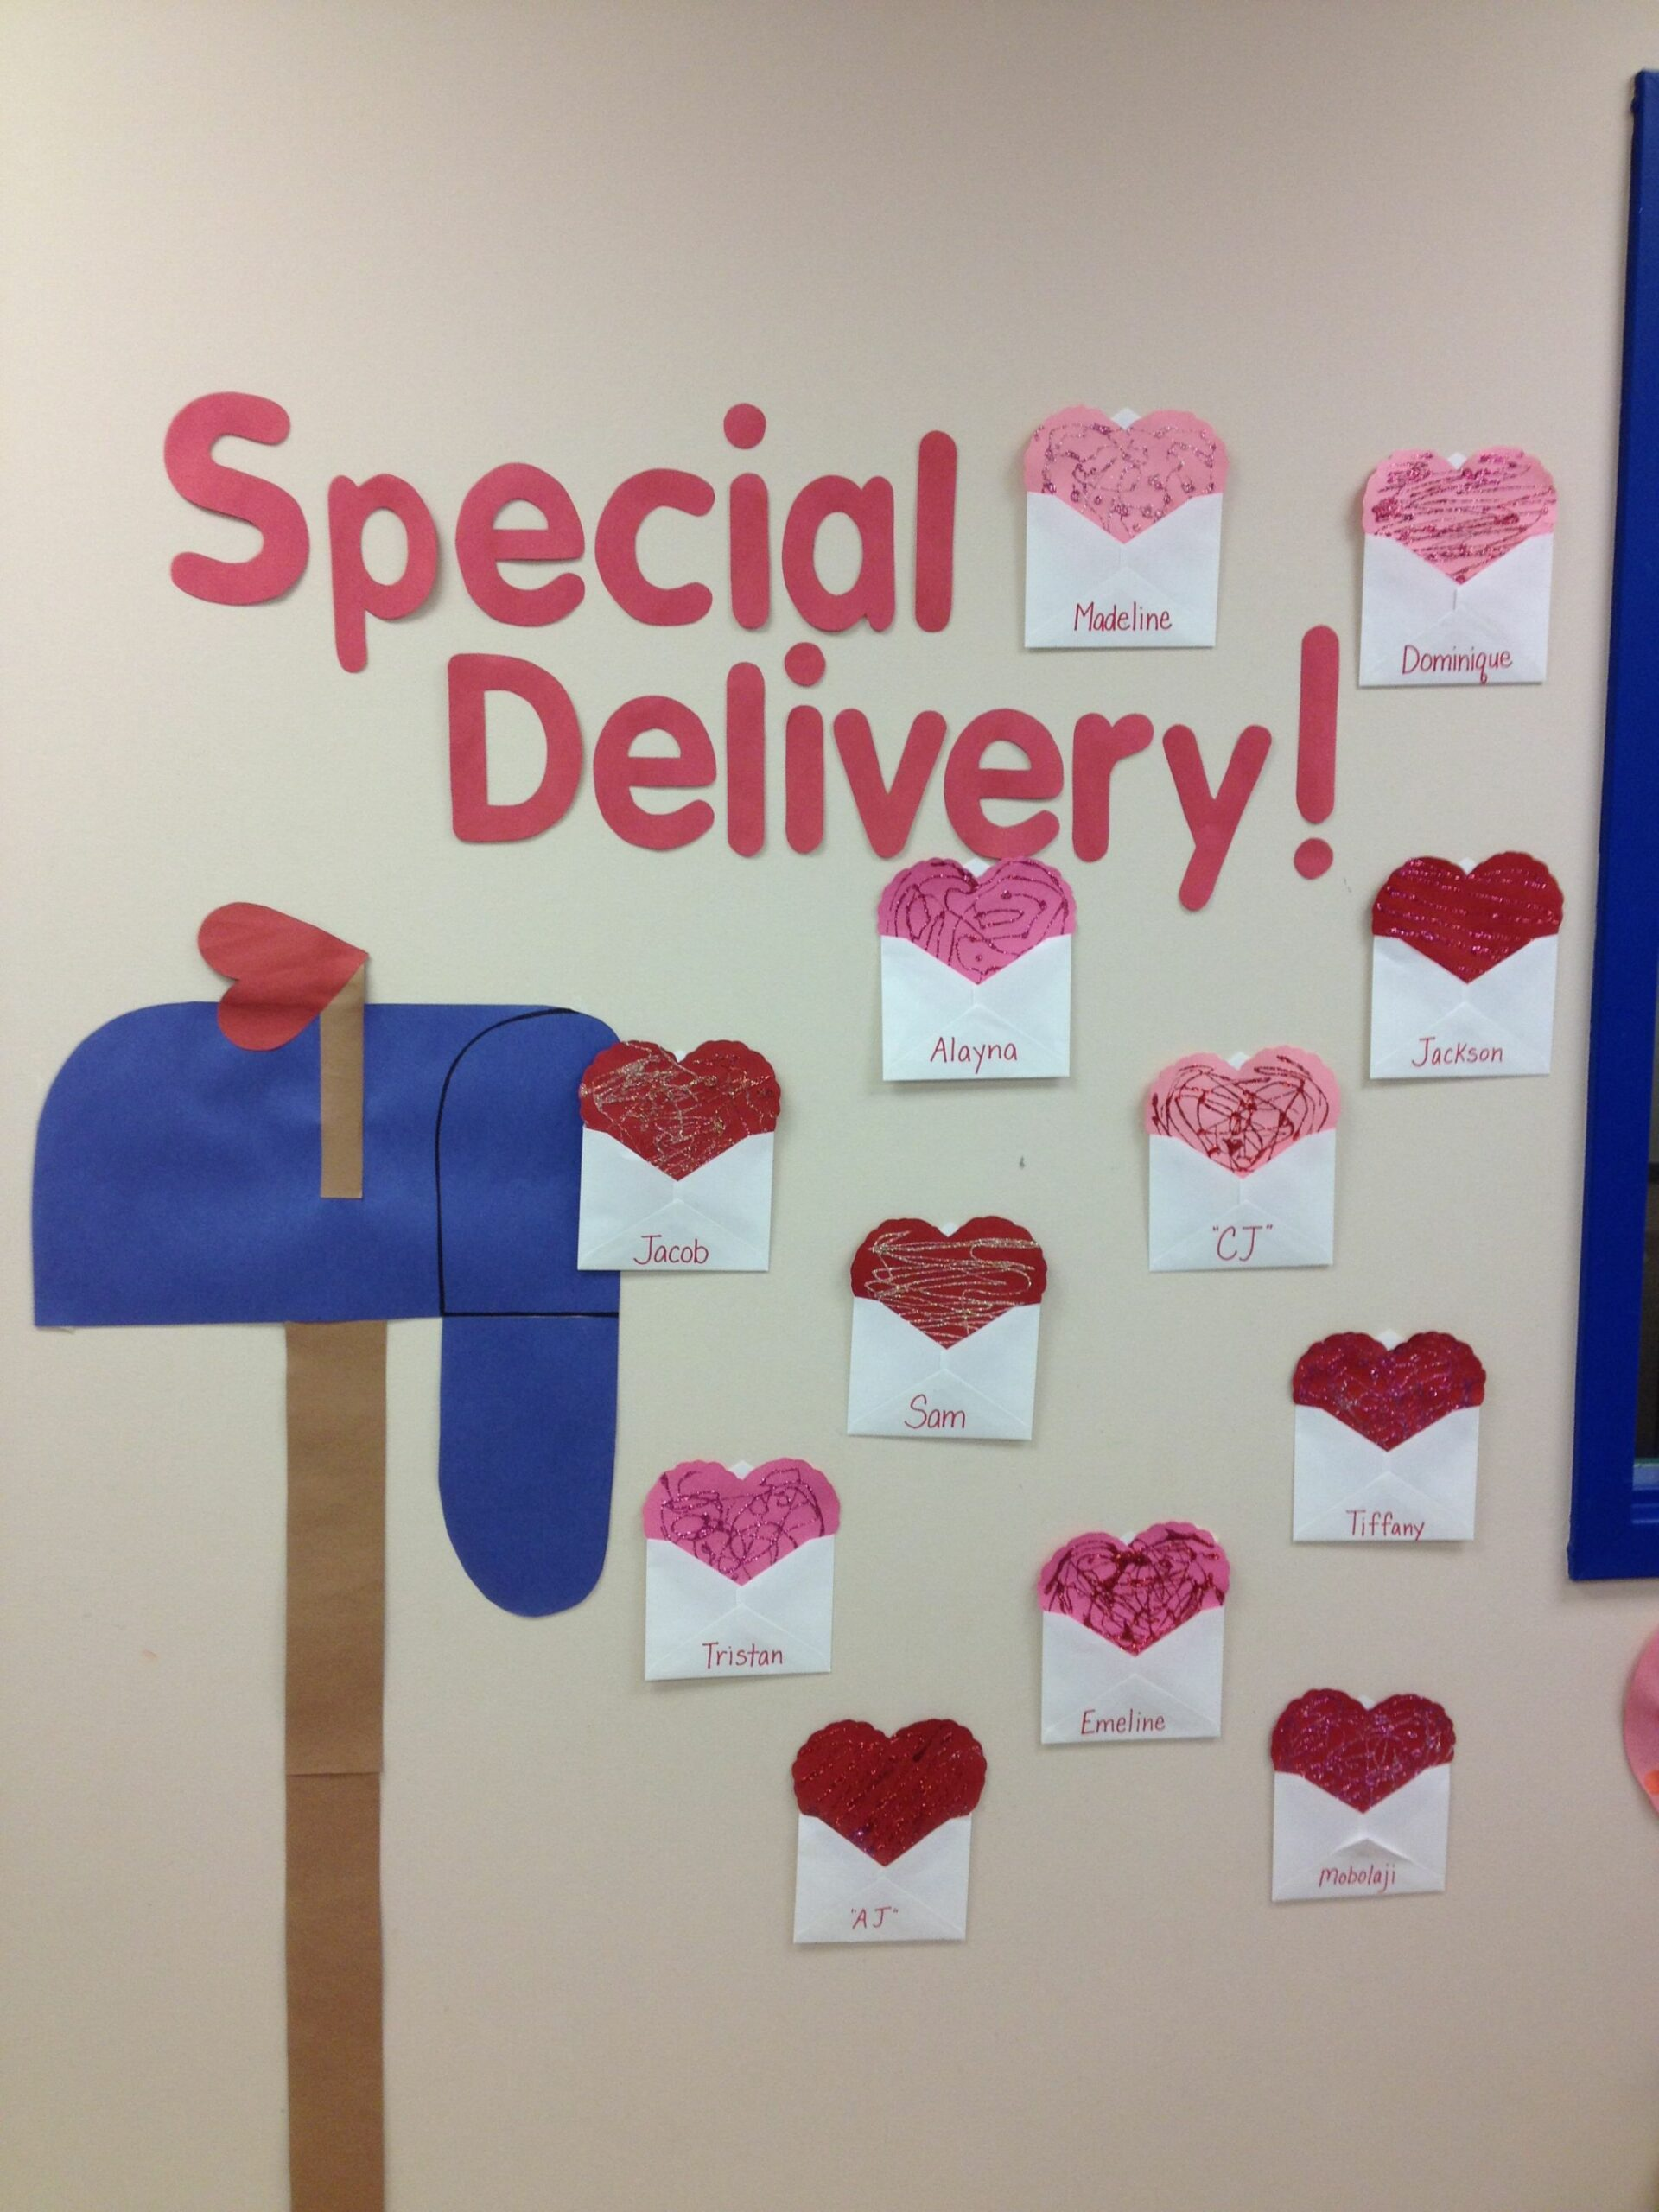 Decorating the classroom wall for Valentines | Valentines day ..